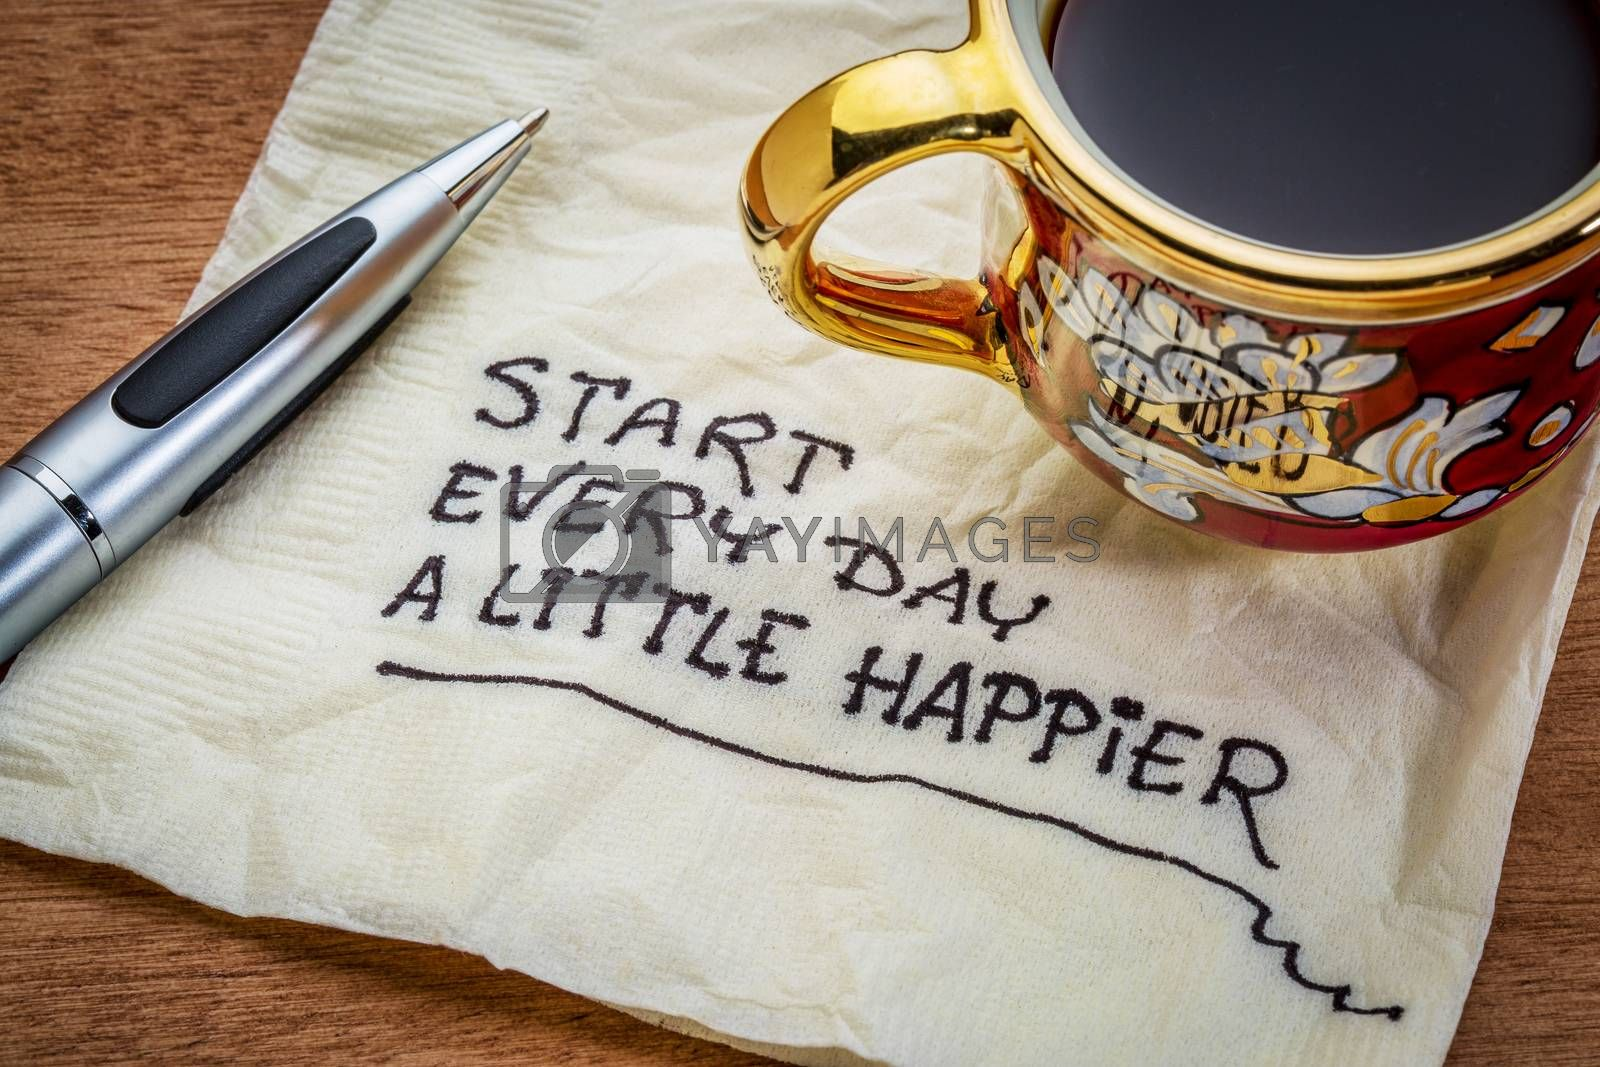 Start every day a little happier - happiness and attitude concept - handwriting on a napkin with cup of coffee